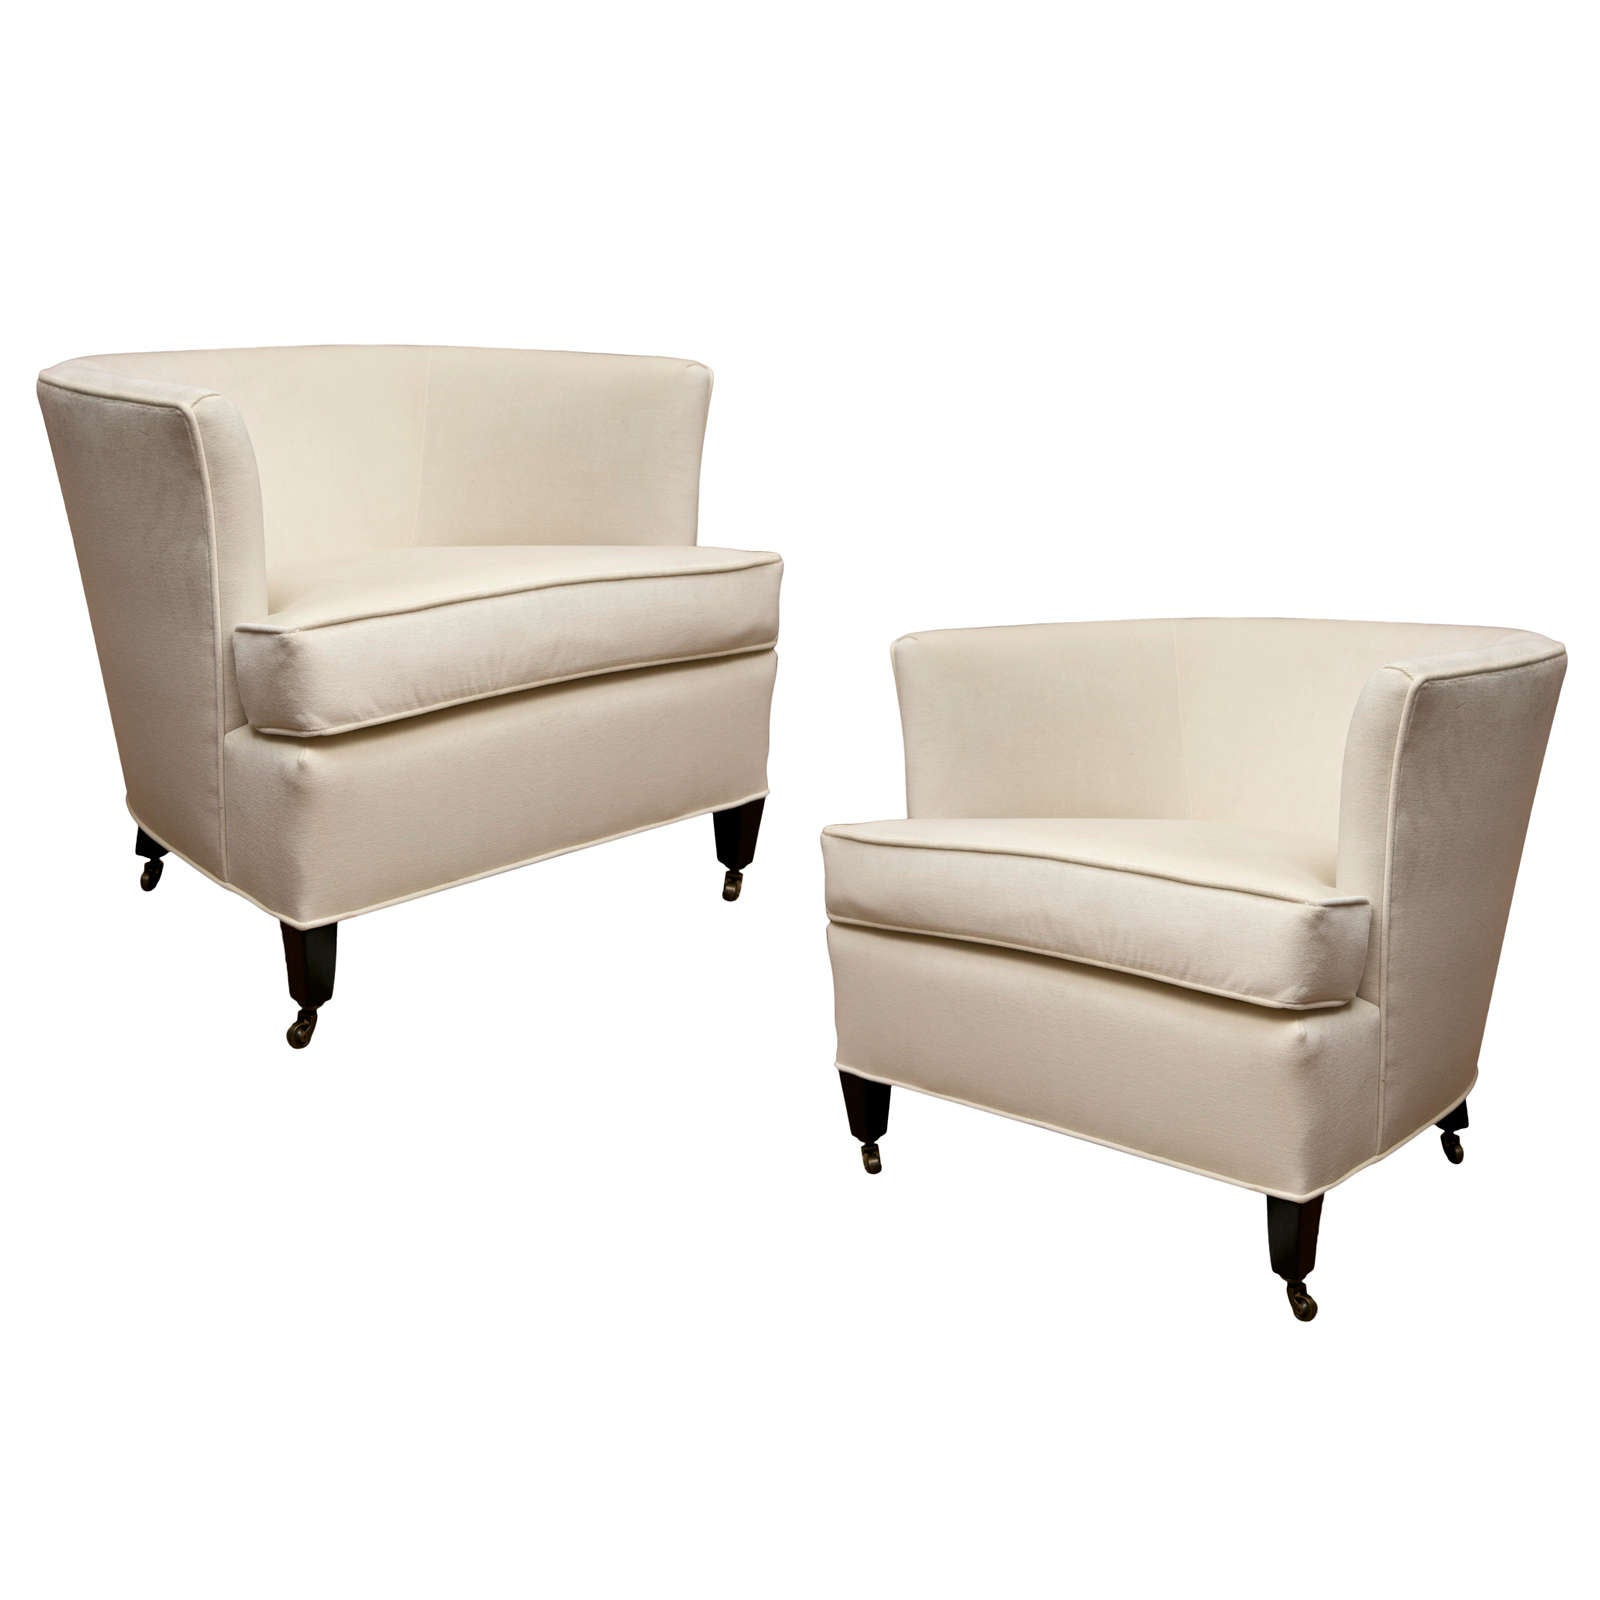 Beau Pair Of Tub Chairs With Casters For Sale